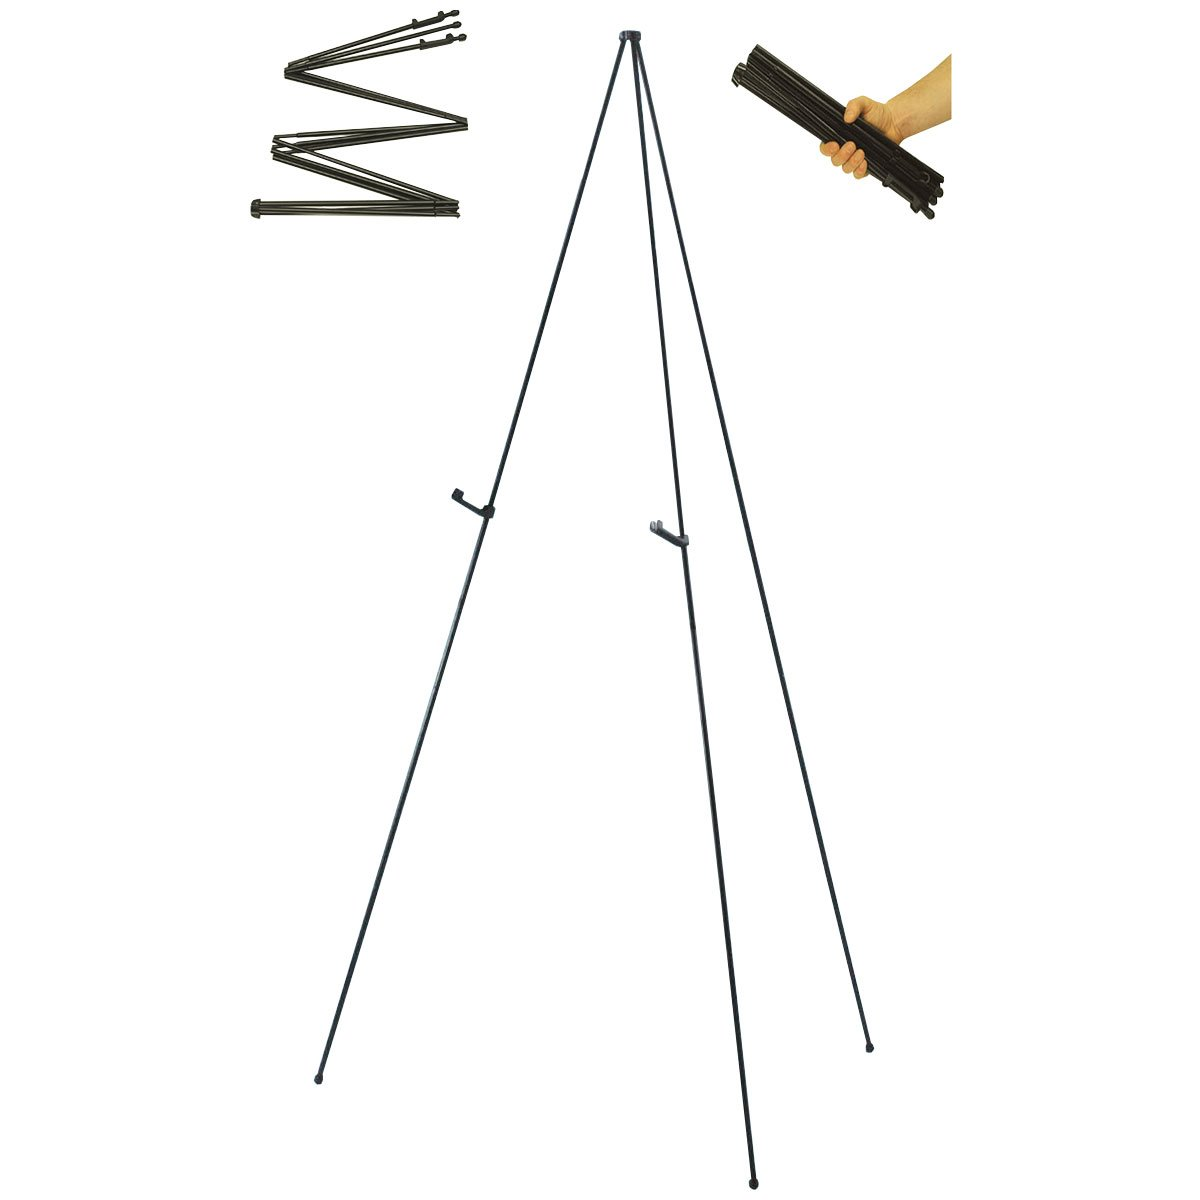 US Art Supply''Easy-Folding Easel'' Black Steel 63'' Tall Display Easel by US Art Supply